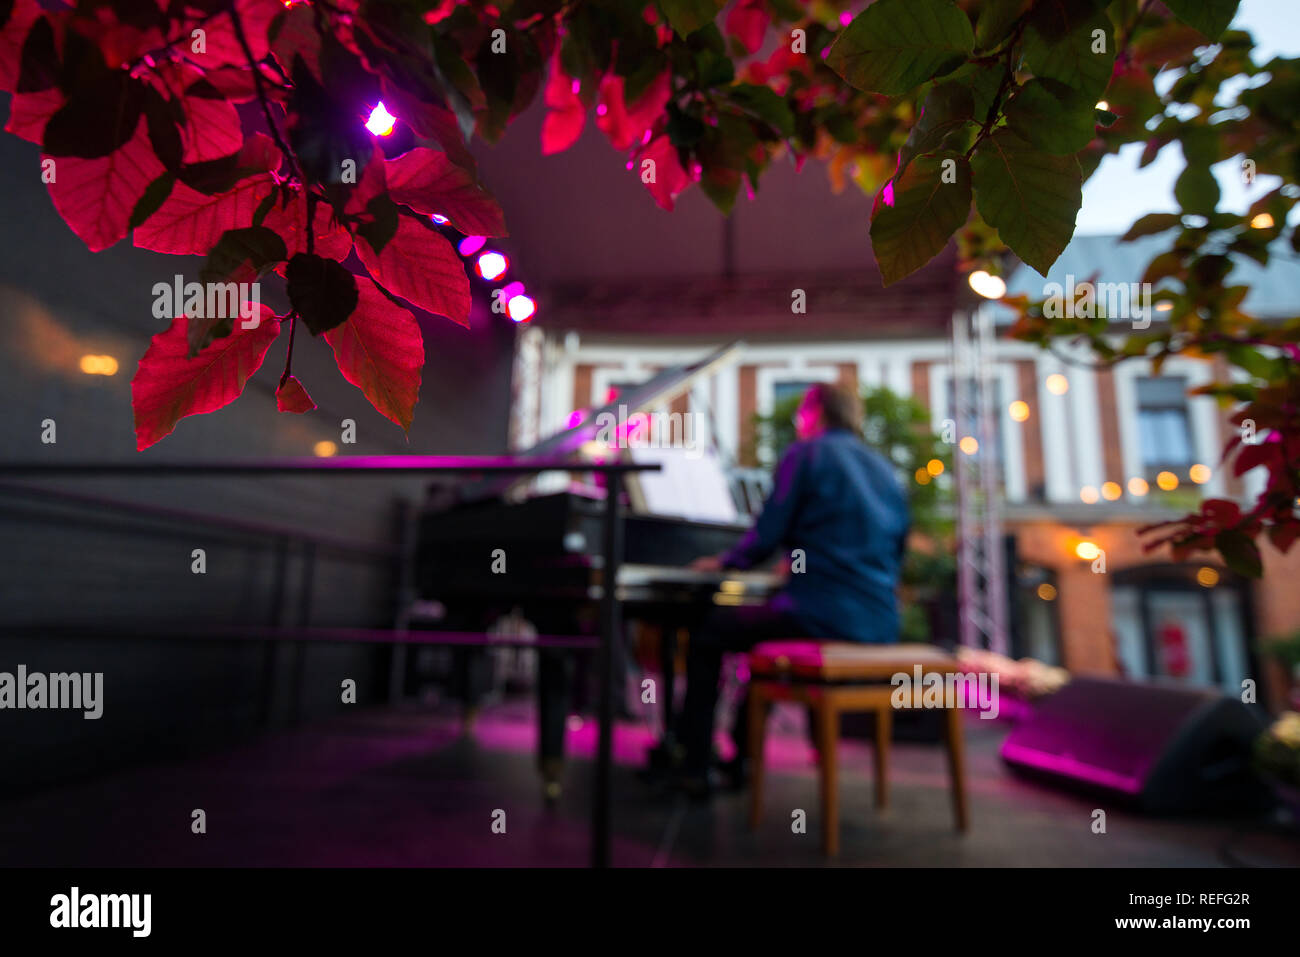 Male musician on stage playing piano. Crowded venue. Audience enjoying romantic and relaxing evening. - Stock Image